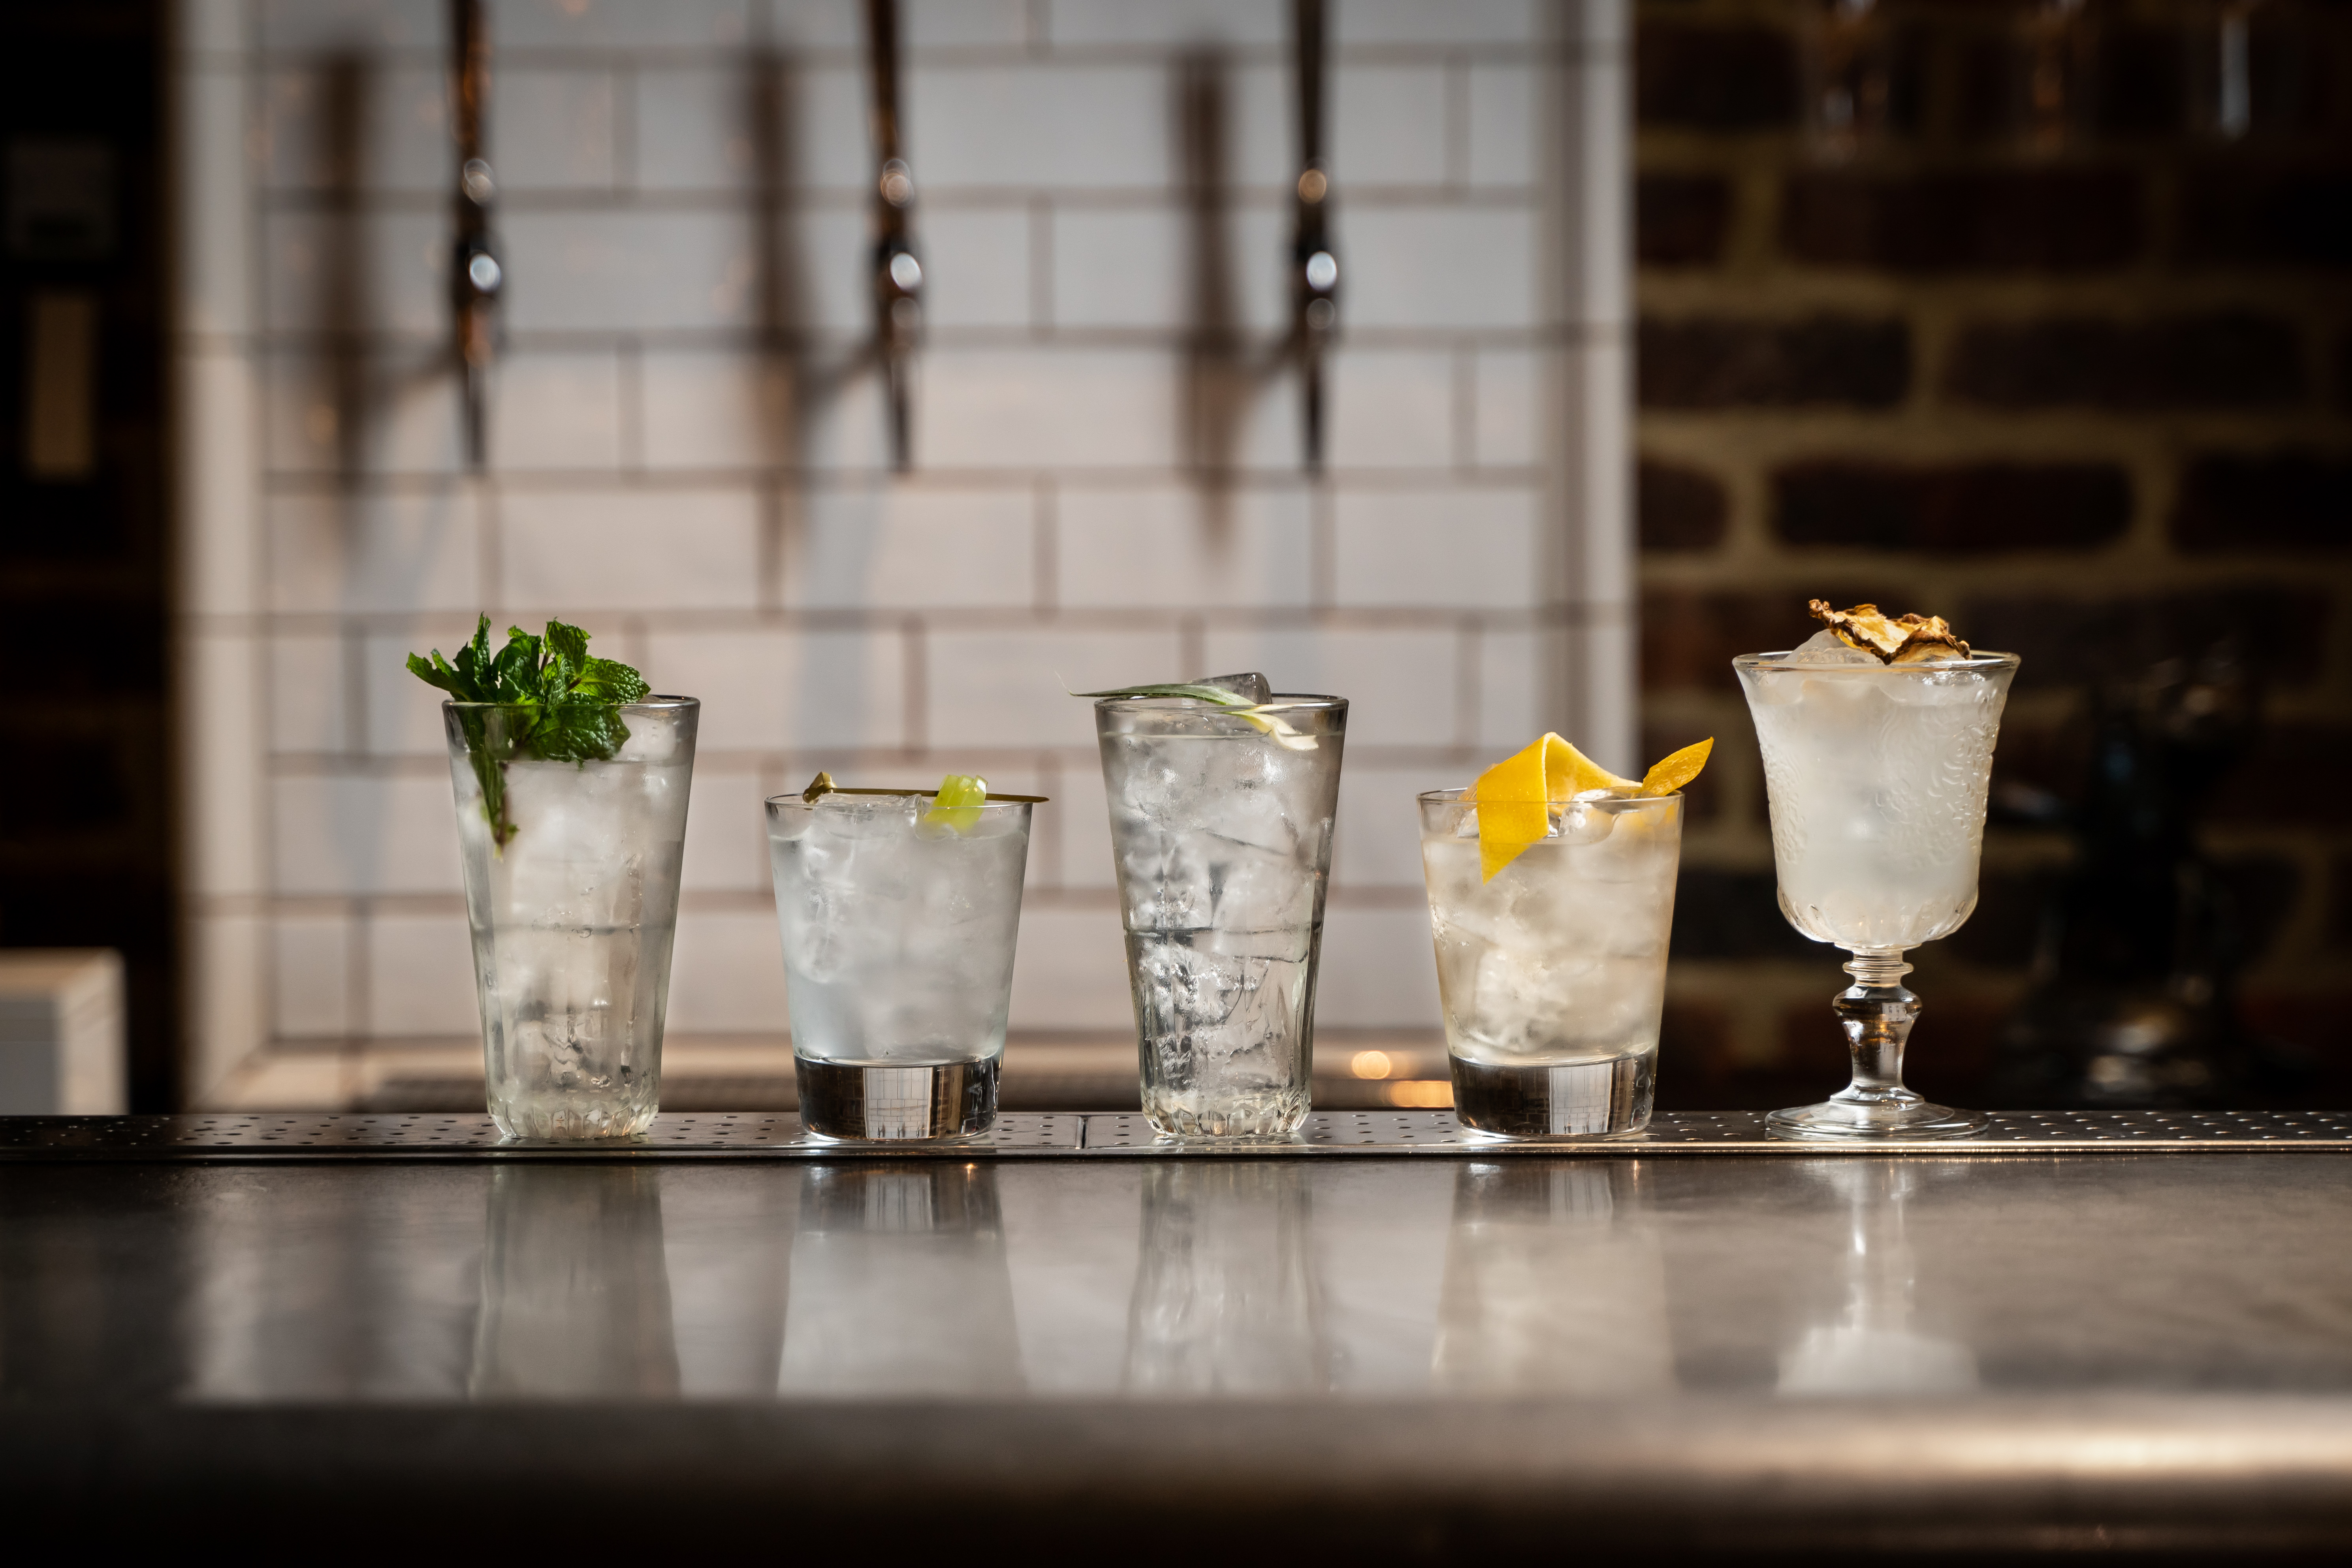 Bar's 'colorless' 'neutral' cocktails mocked on Twitter: 'Hadn't realized cocktails were gender specific'